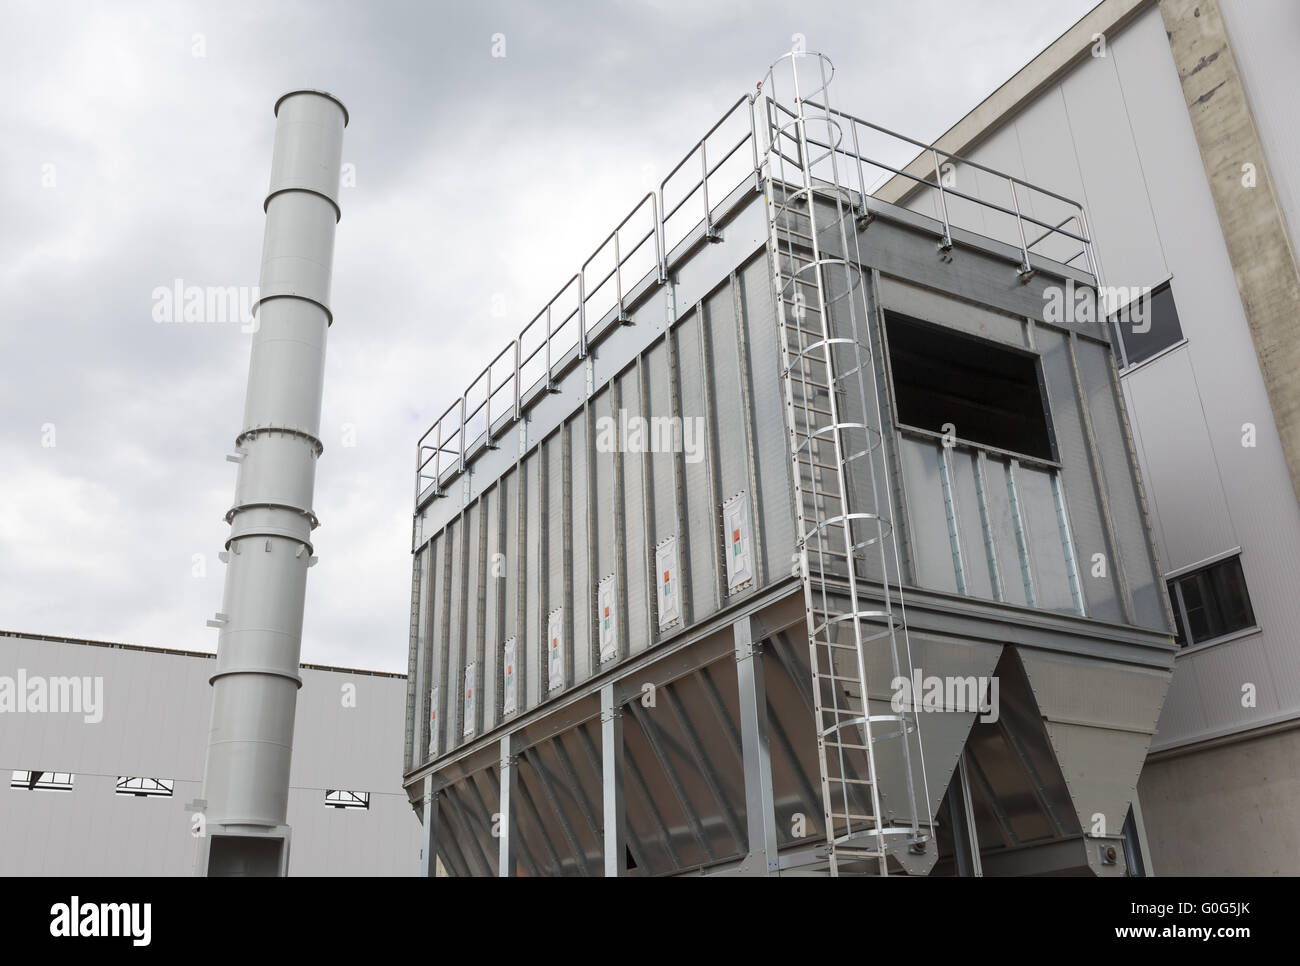 Waste plant outside process storage methane oil organic - Stock Image